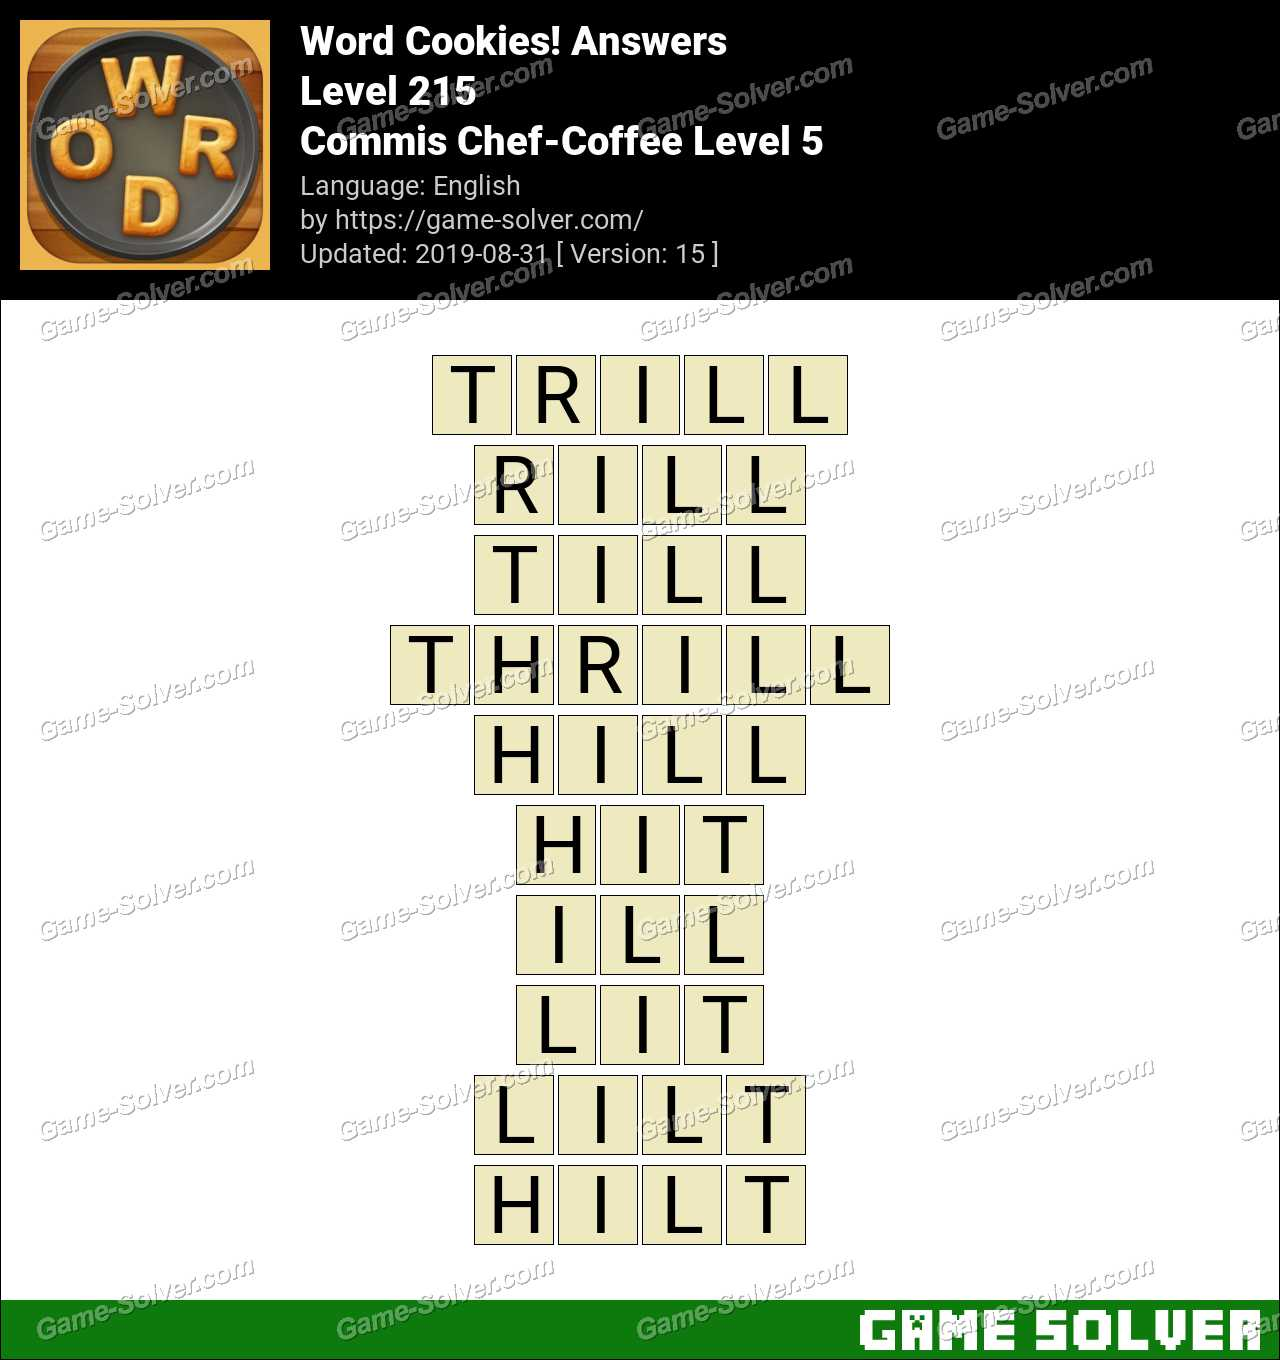 Word Cookies Commis Chef-Coffee Level 5 Answers